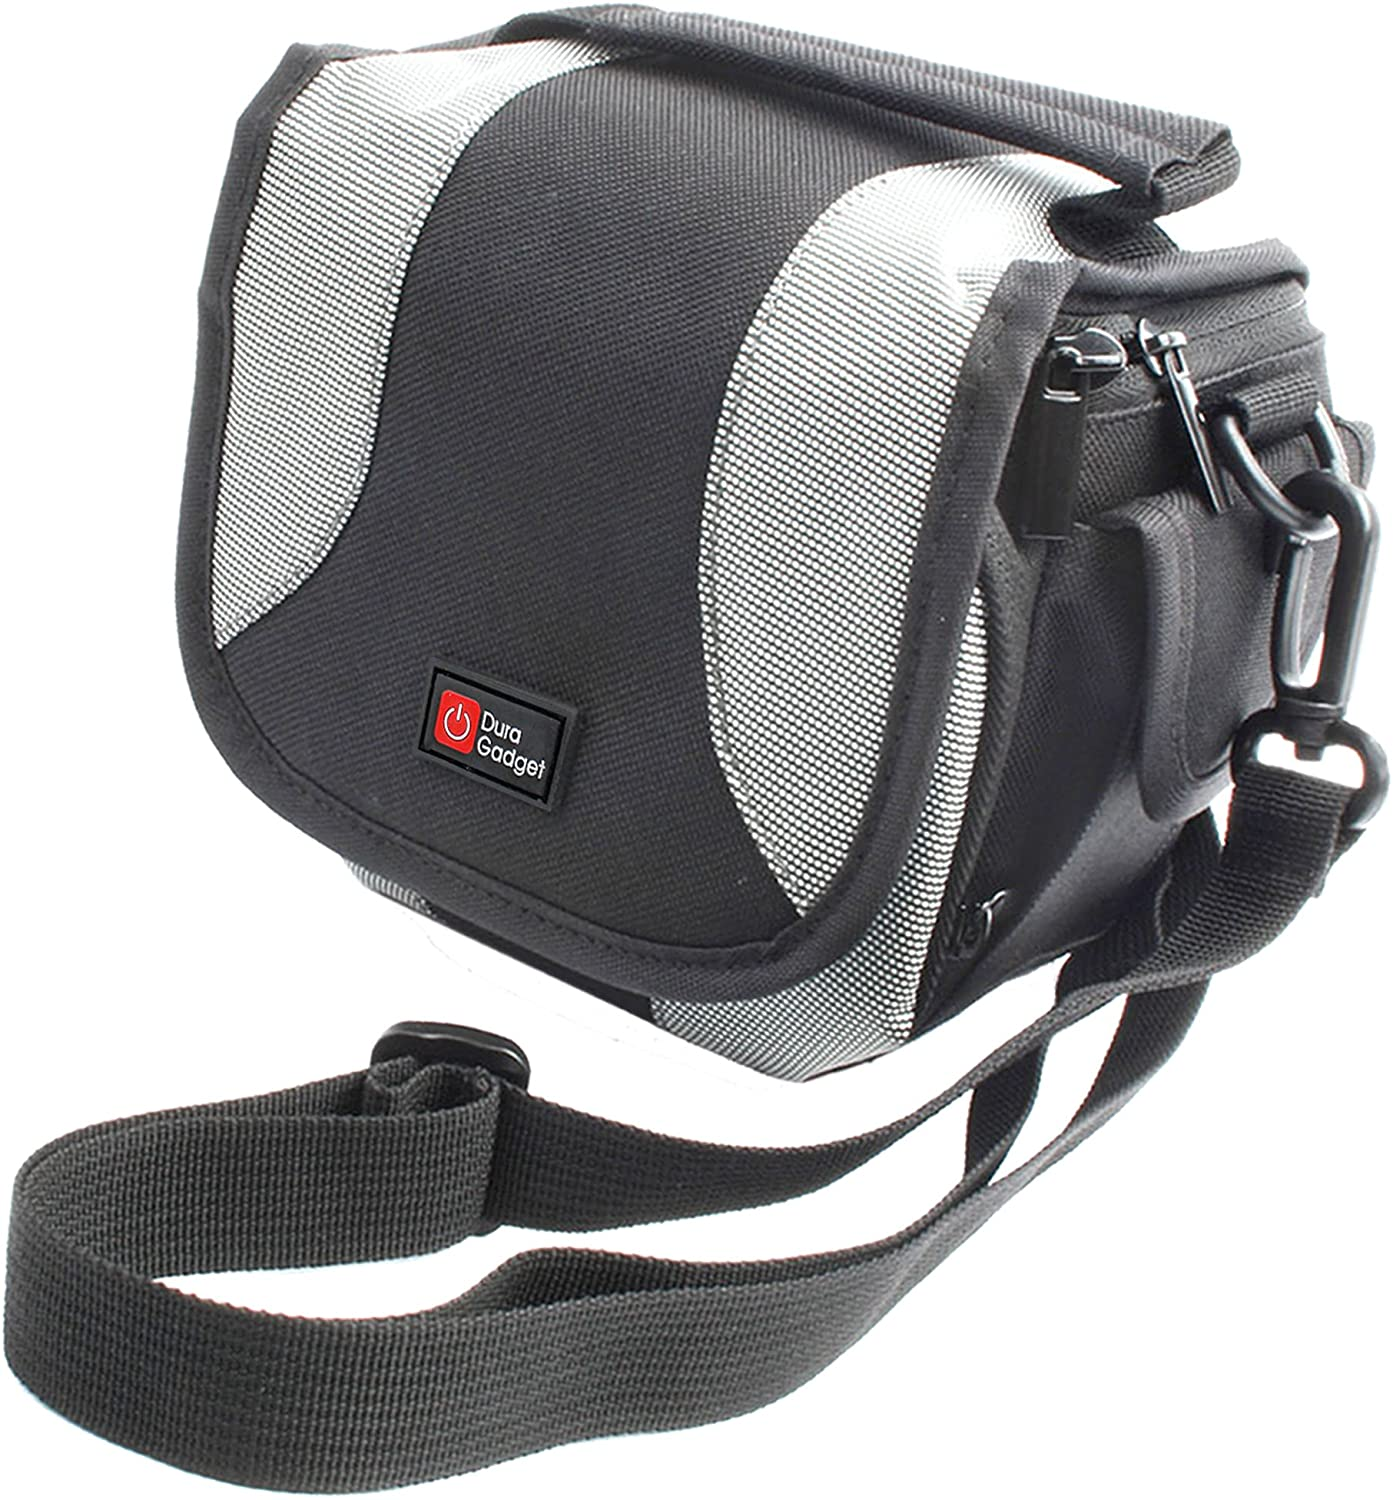 DURAGADGET Portable Carry Case w/Padded Interior & Shoulder Strap - Compatible with SGODDE 10x25 Binocular